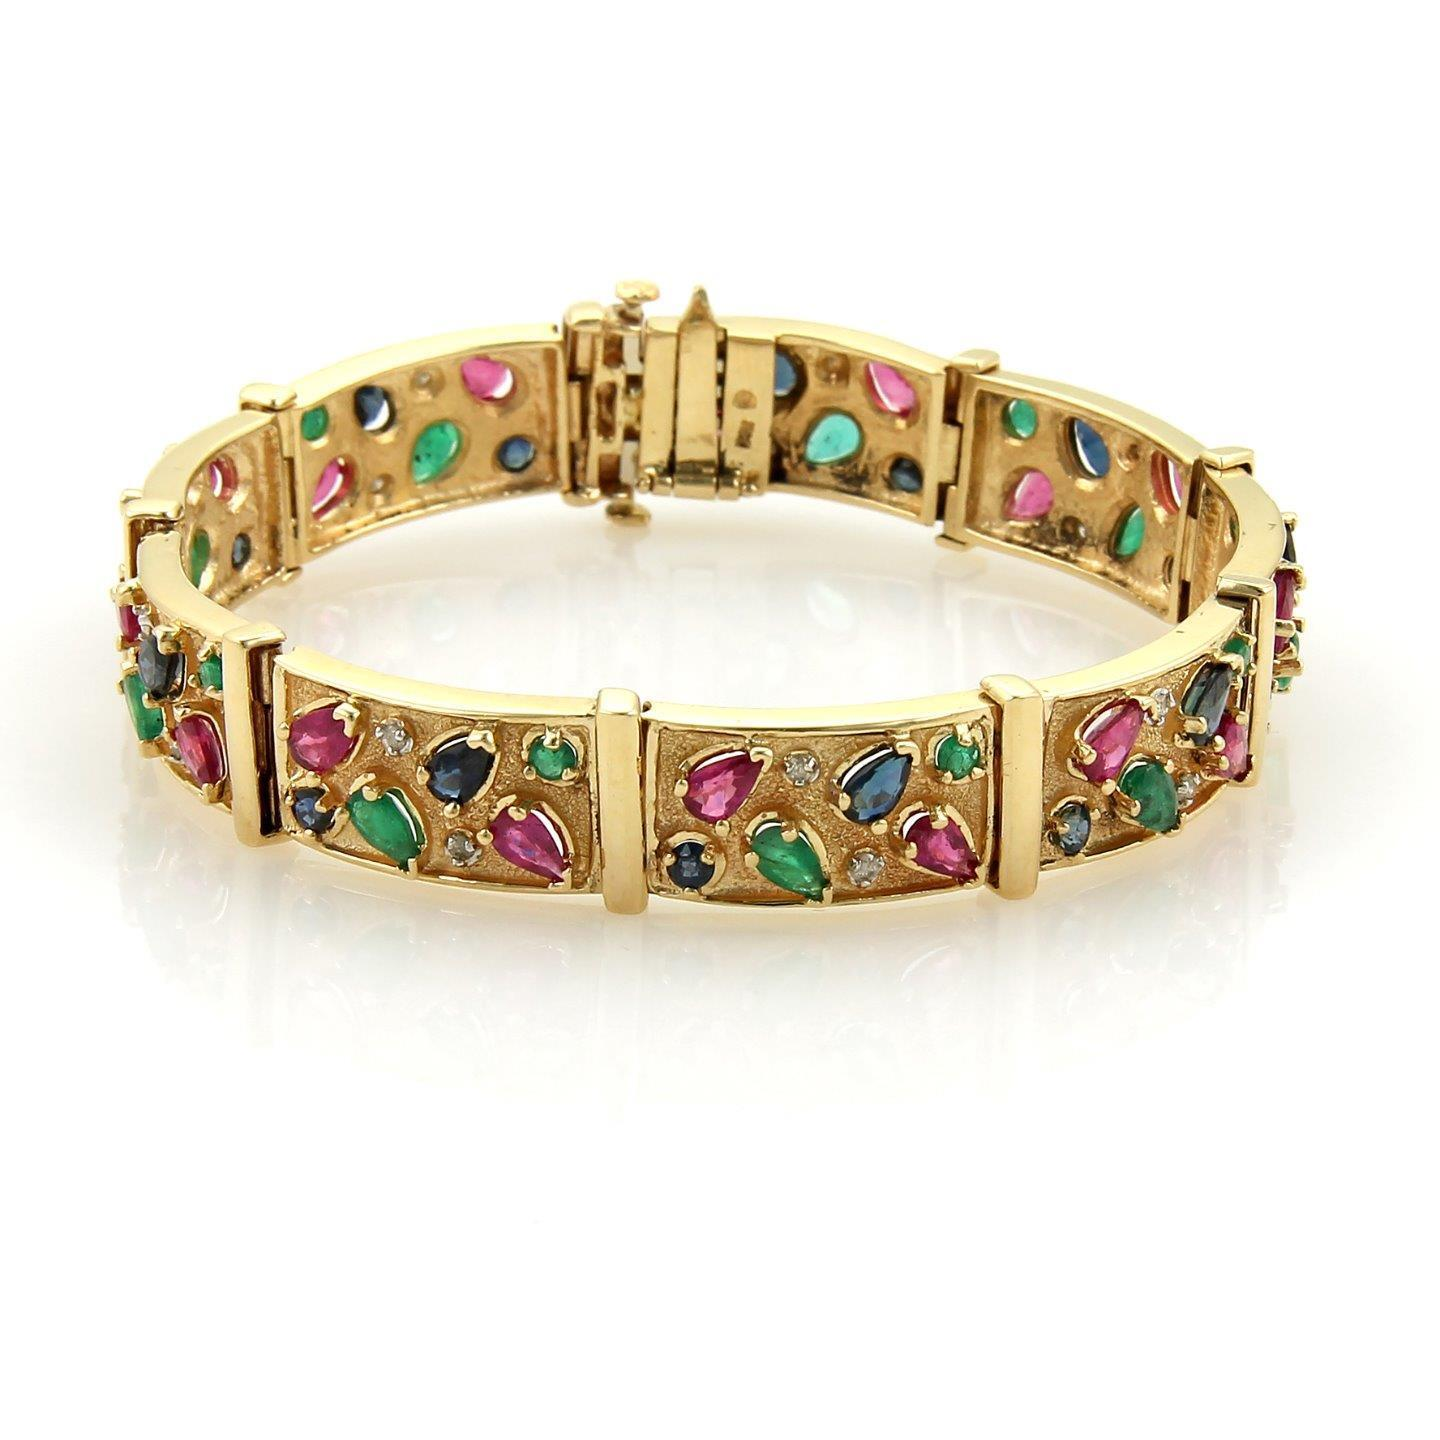 10.35ct Multi-color Gems & Diamonds 14k Yellow gold Bar Link Bracelet